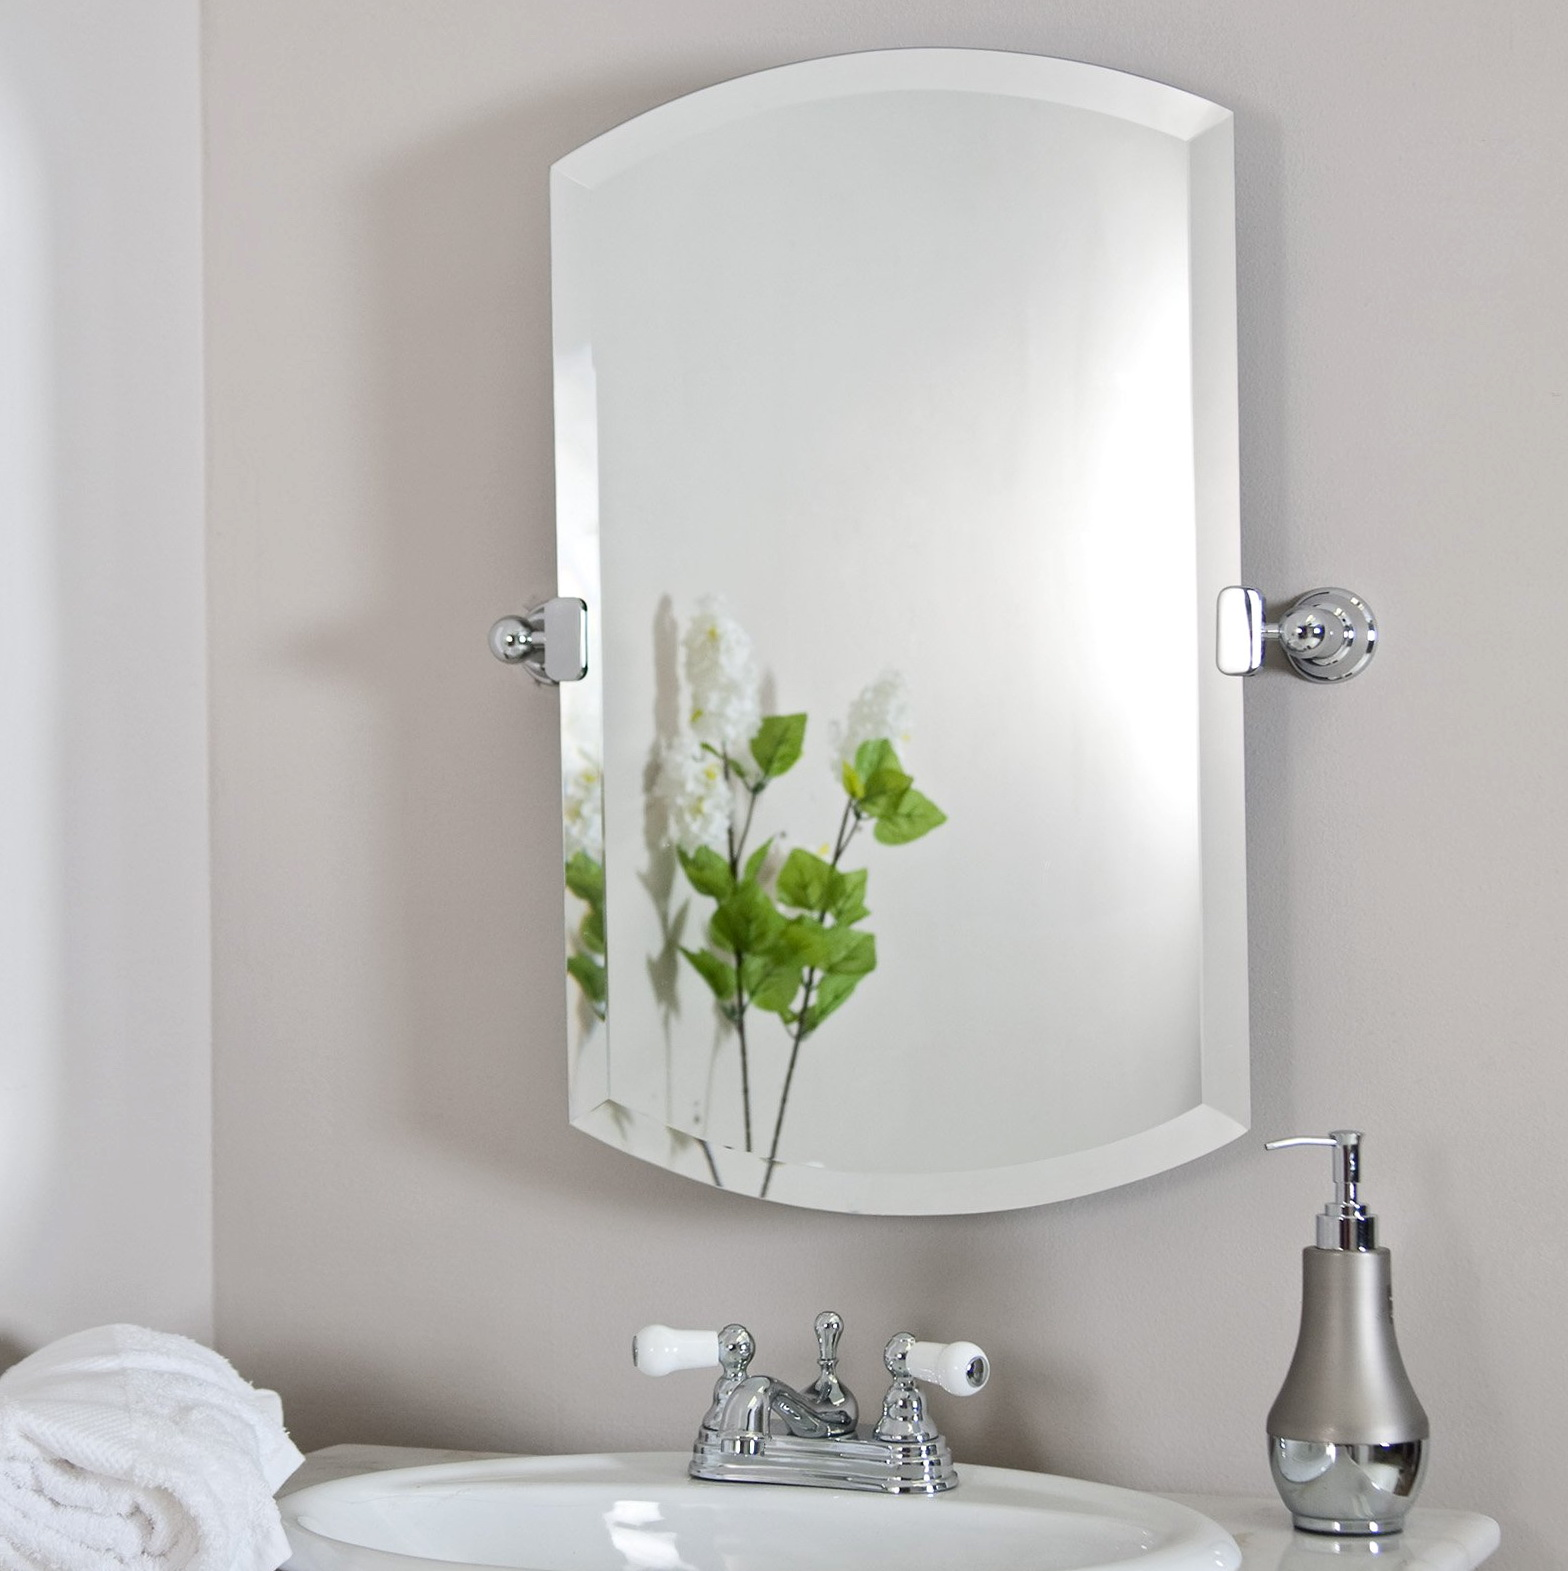 Small Wall Mirrors For Bathrooms